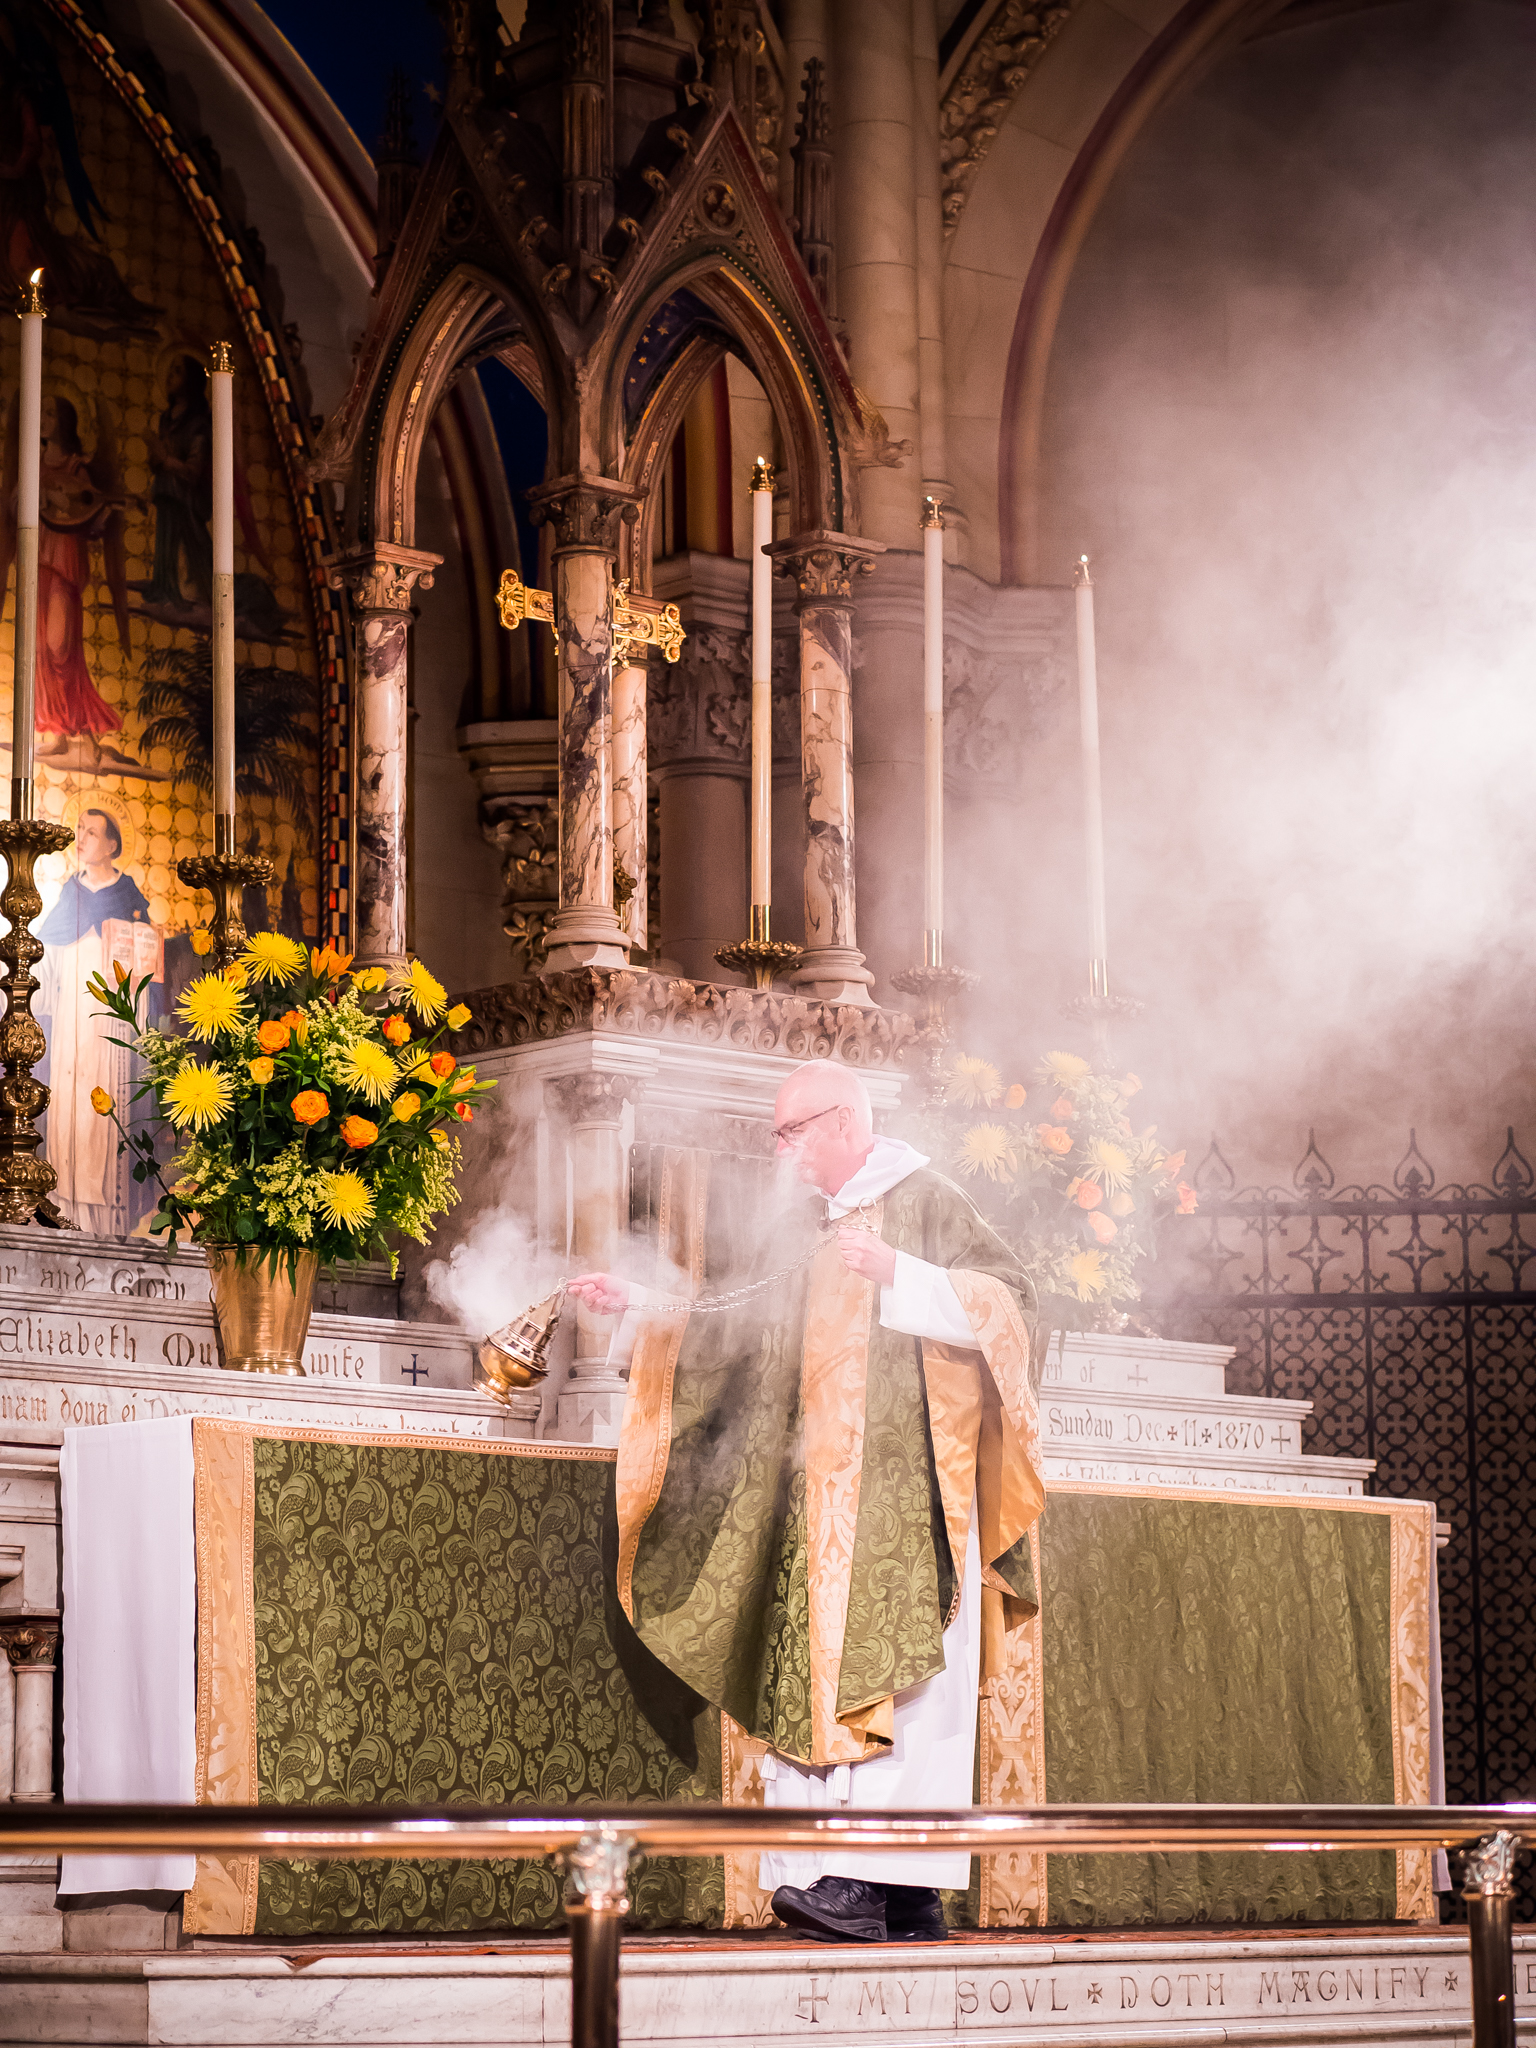 """Incense is offered while the choir sings """"Gloria in excelsis"""" from Missa Aeterna Christi Munera by Palestrina (1525-1594).  Photo by Ricardo Gomez"""